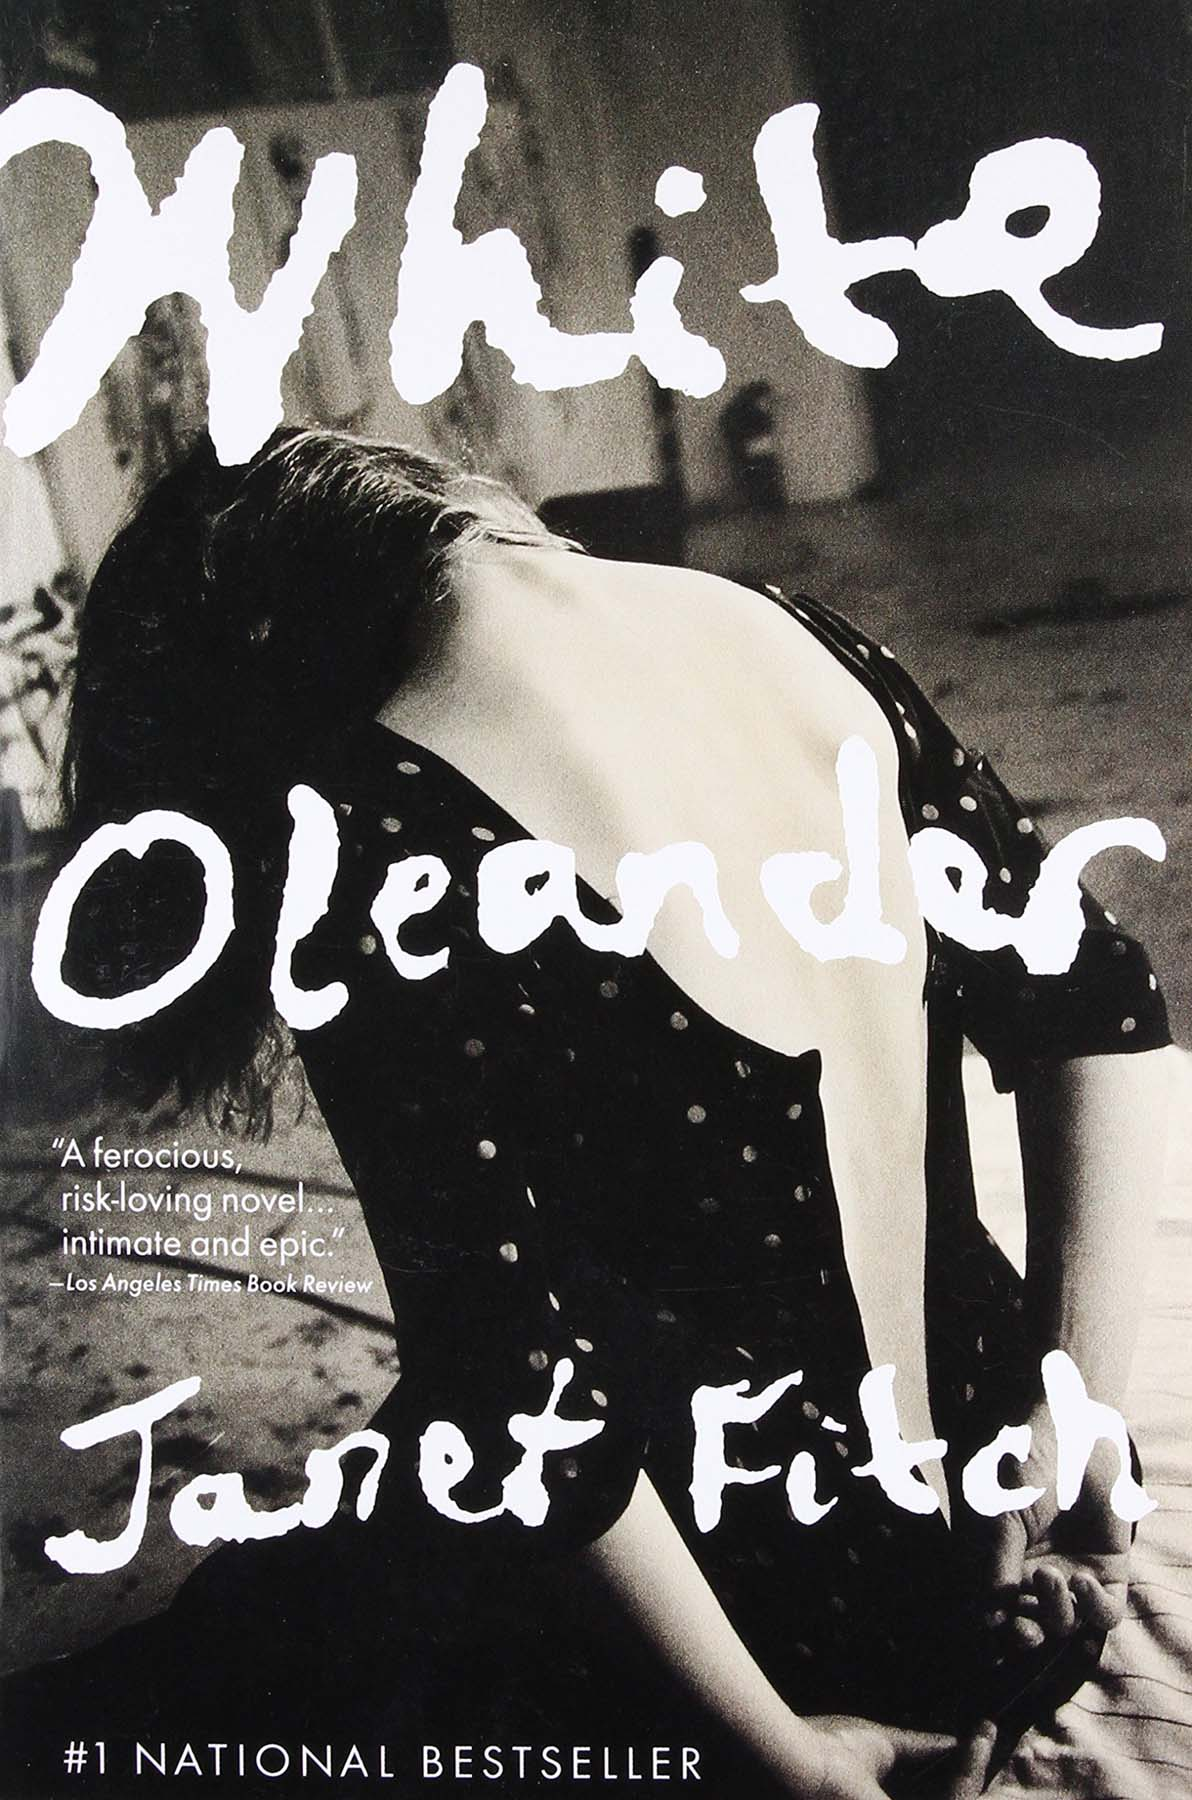 WHITE OLEANDERby Janet Fitchcr: Back Bay Books